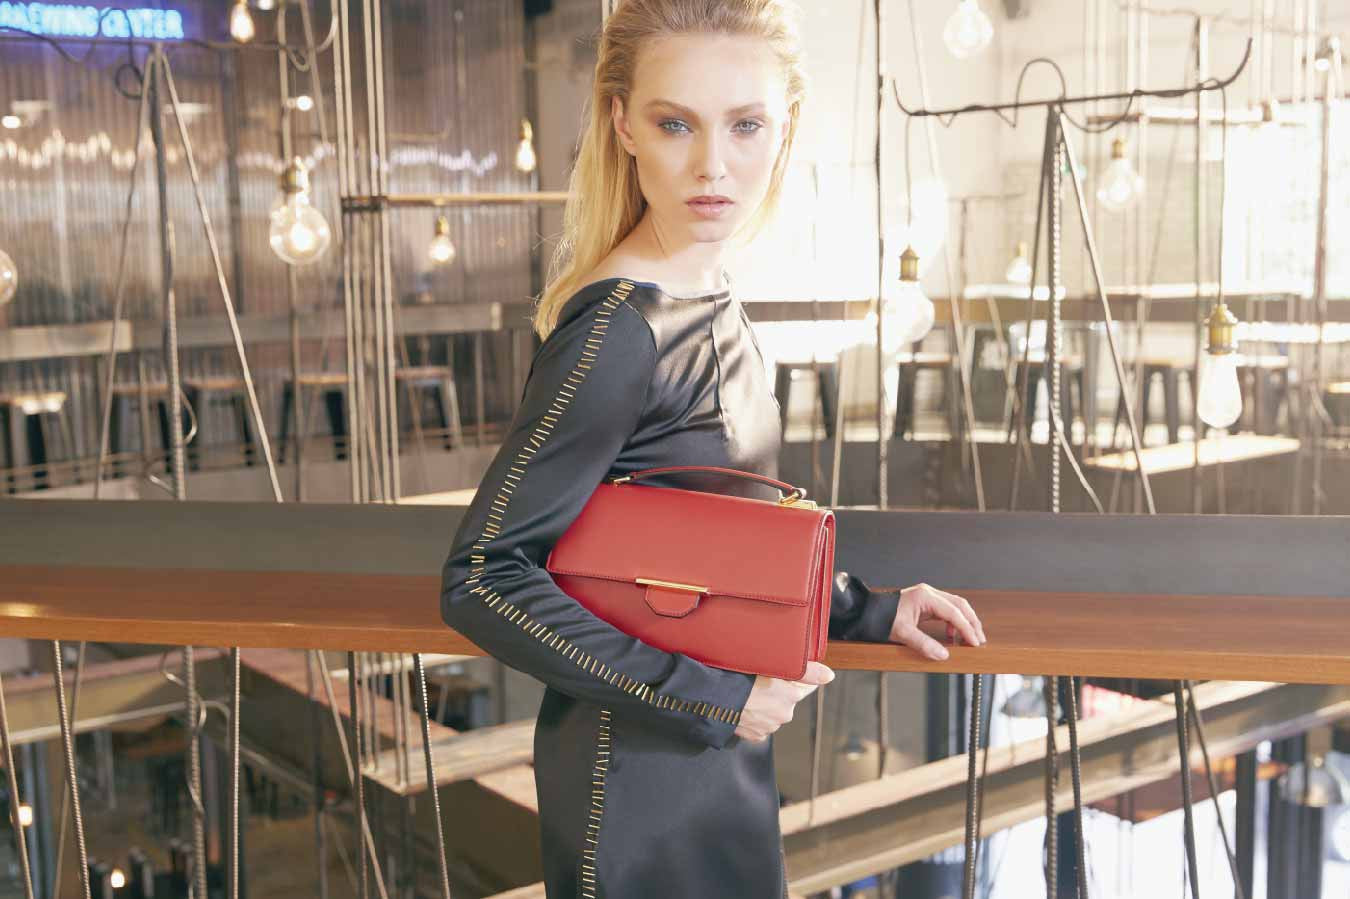 "Image of a stunning model with a luxury classic style Siren Crossbody leather shoulder handbag in Red Rust. This luxury piece is more than just a handbag to carry essentials, it is a fashion statement piece known for it's classy and casual style to transition into any occasions. Our Siren is Revelry's best selling item with just-the-perfect size and shape. The designs are classic and simple, favouring clean lines, a trending colour palette with a modern luxury finish. If you are a girl on the go who needs something small that will fit a wallet and a few essentials, this handbag is a definite go for you. There is something so fresh and chic about red accessories to add colour into your world. Designed in a small rectangular size with a front flap, this structure holds more than enough essentials for a comfortable hands-free wear. The long strap is not only detachable but adjustable to suit any length to the wearer. Sling it on or across the shoulder, it's weekend to weekday possibilities. A top handle is also available if you prefer a modern hand held clutch style to polish your everyday look. The Siren Crossbody handbag comes in a stunning supple leather and sleek design that captures a downtown cool and sophistication, but also completely approachable. Covered in high quality smooth grain cow leather, the spicy flavour earth hue is a stylish tone that emanate luxury and sophistication. Hence the name ""Red Rust"", dramatic and rich. With a mild sheen, the leather is also enhanced with dark oil edging finishing around the handbag. The structure of the handbag is padded subtly to add a soft luscious feel to the already-smooth supple leather. A Revelry handbag is incomplete without it's signature iconic Gold Bar inspired hardware. Each Gold Bar is plated in 22 karat gold and has the Revelry logo embossed at the top. This piece of hardware highlights the simplicity and minimalism of the design of the handbag. It functions both as a design feature and secure lock closure. Like it's signature iconic front Gold Bar inspired hardware, the top handle lands its design from it. The top handle hardware is a smaller Gold Bar with a square ring attached to it. Comes in a pair, the top handle is attached to both ends of the square rings. All hardwares are plated in 22 karat gold and subtle branding is embossed on the inner corner of the Gold Bar for that luxury designer finish. The internal of the handbag features 2 equal seperate compartment areas for storing and organising the necessary essentials, e.g. wallet, mobile phone, keys, lipstick, pen, tissues or anything that is compact and practical. A wide pocket is also available at the back to store smaller items such as business cards or receipts. This stunning handbag is stitched together with quality tonal threading and every piece is finished with clean and neat attention to detail. The internal body is covered in a combination of smooth full grain cow leather and high quality woven gold fabric. The top flap, facing and pocket trimming are leather lined while the remaining internal part of the body is lined in gold fabric. An iconic Revelry logo is embossed on the lower mid area of the flap for that luxury designer finish. A best selling style, the Siren Crossbody handbag is available online at www.reverly-rvly.com."